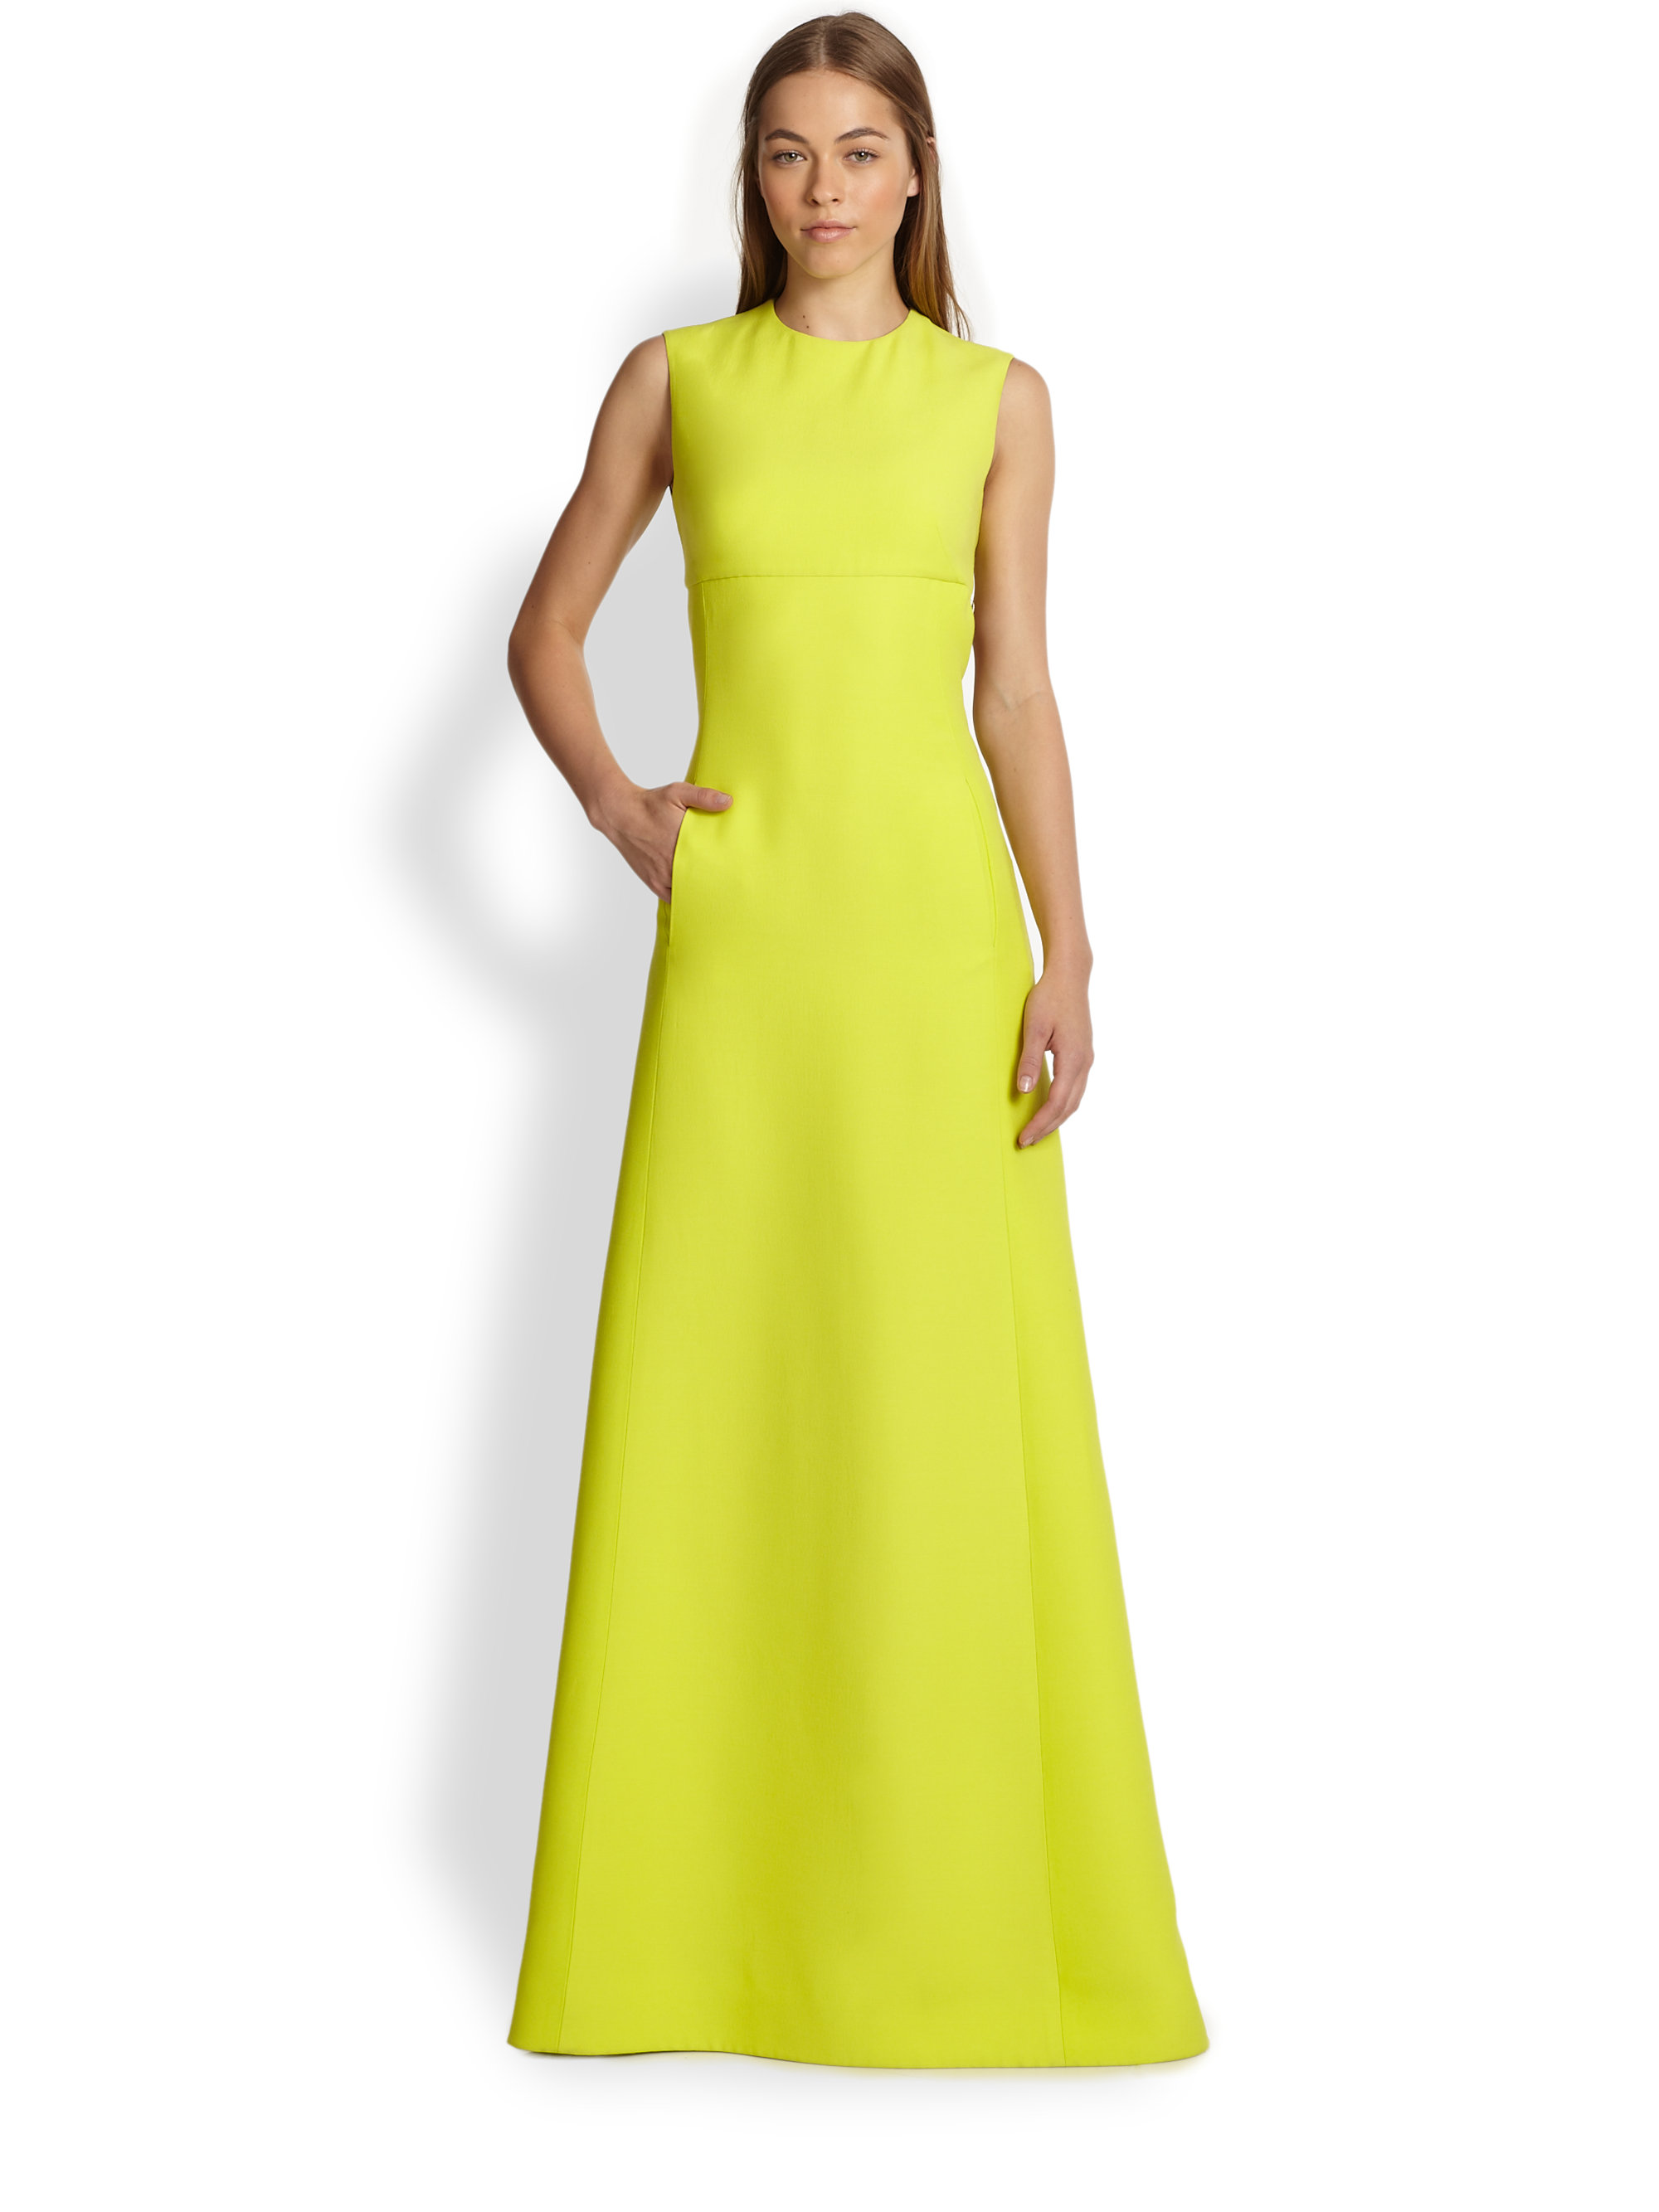 Lyst - Valentino Cutoutback Maxi Dress in Yellow